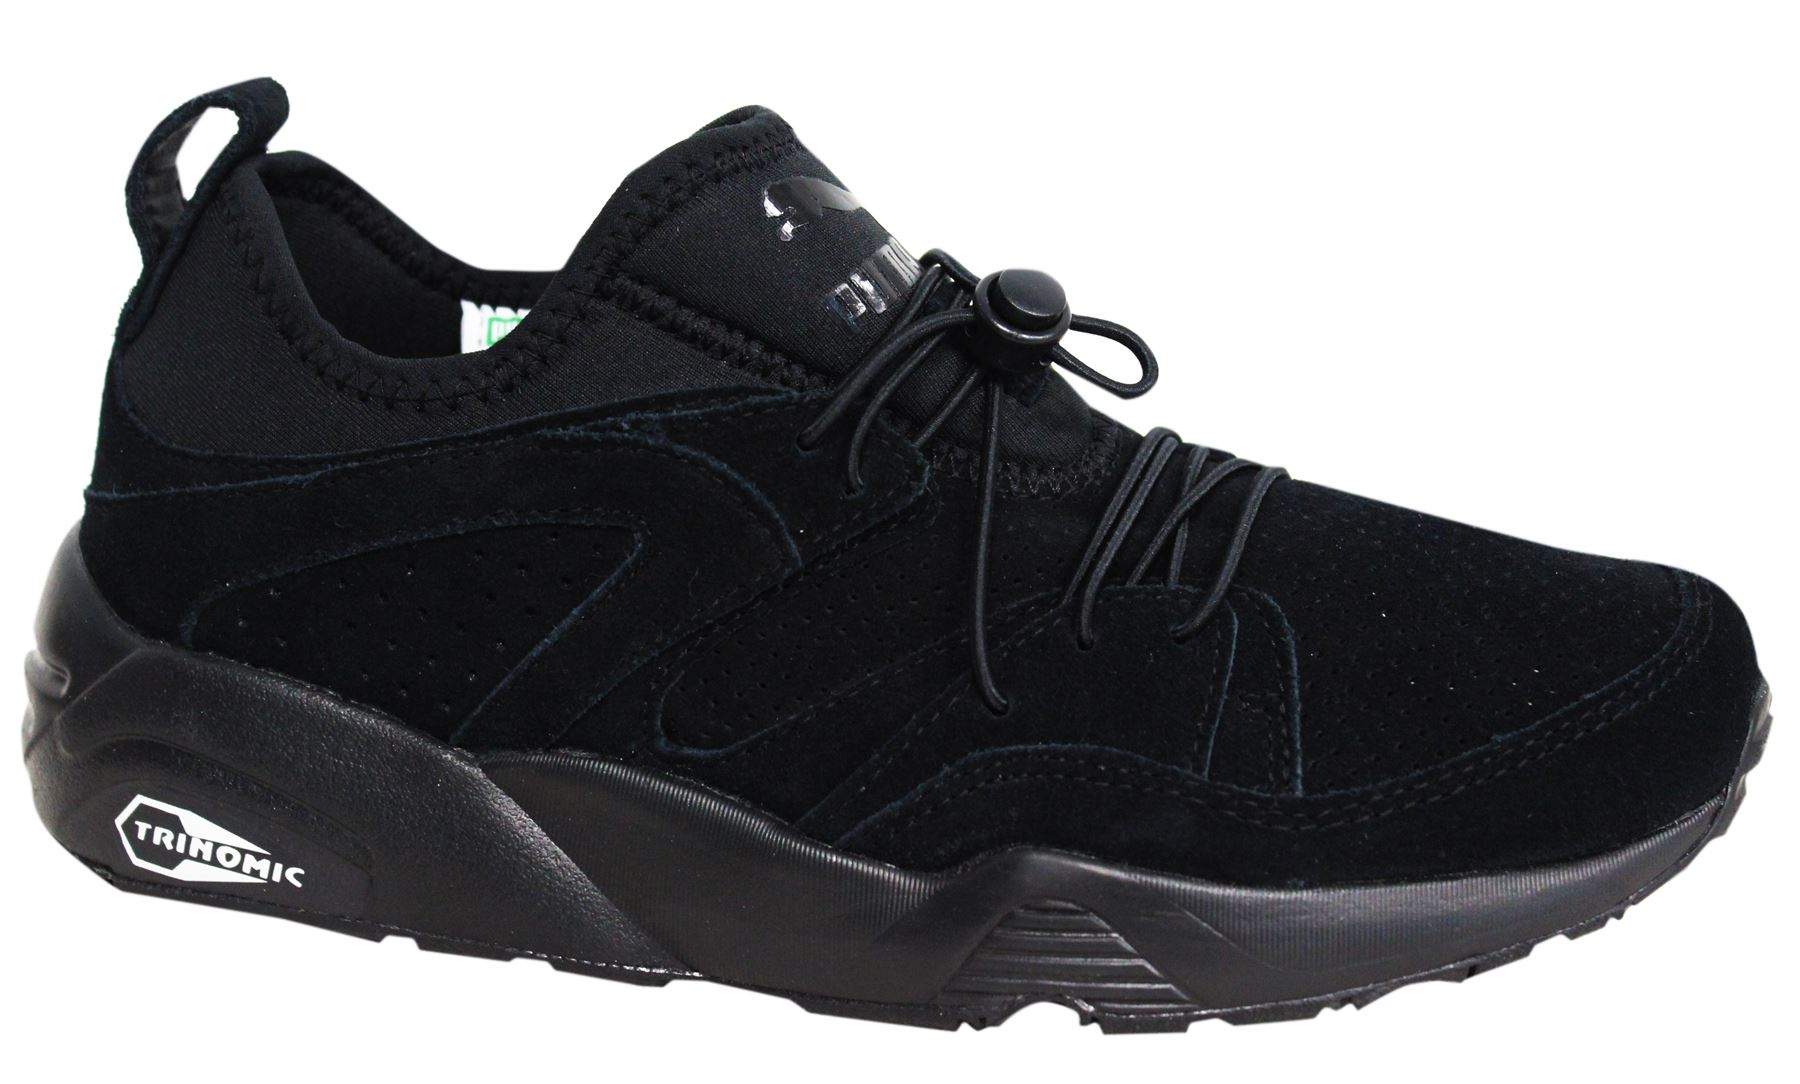 63cb84cf65d0 Puma Trinomic Blaze of Glory Soft Mens Black Trainers Shoes 360101 06 M15